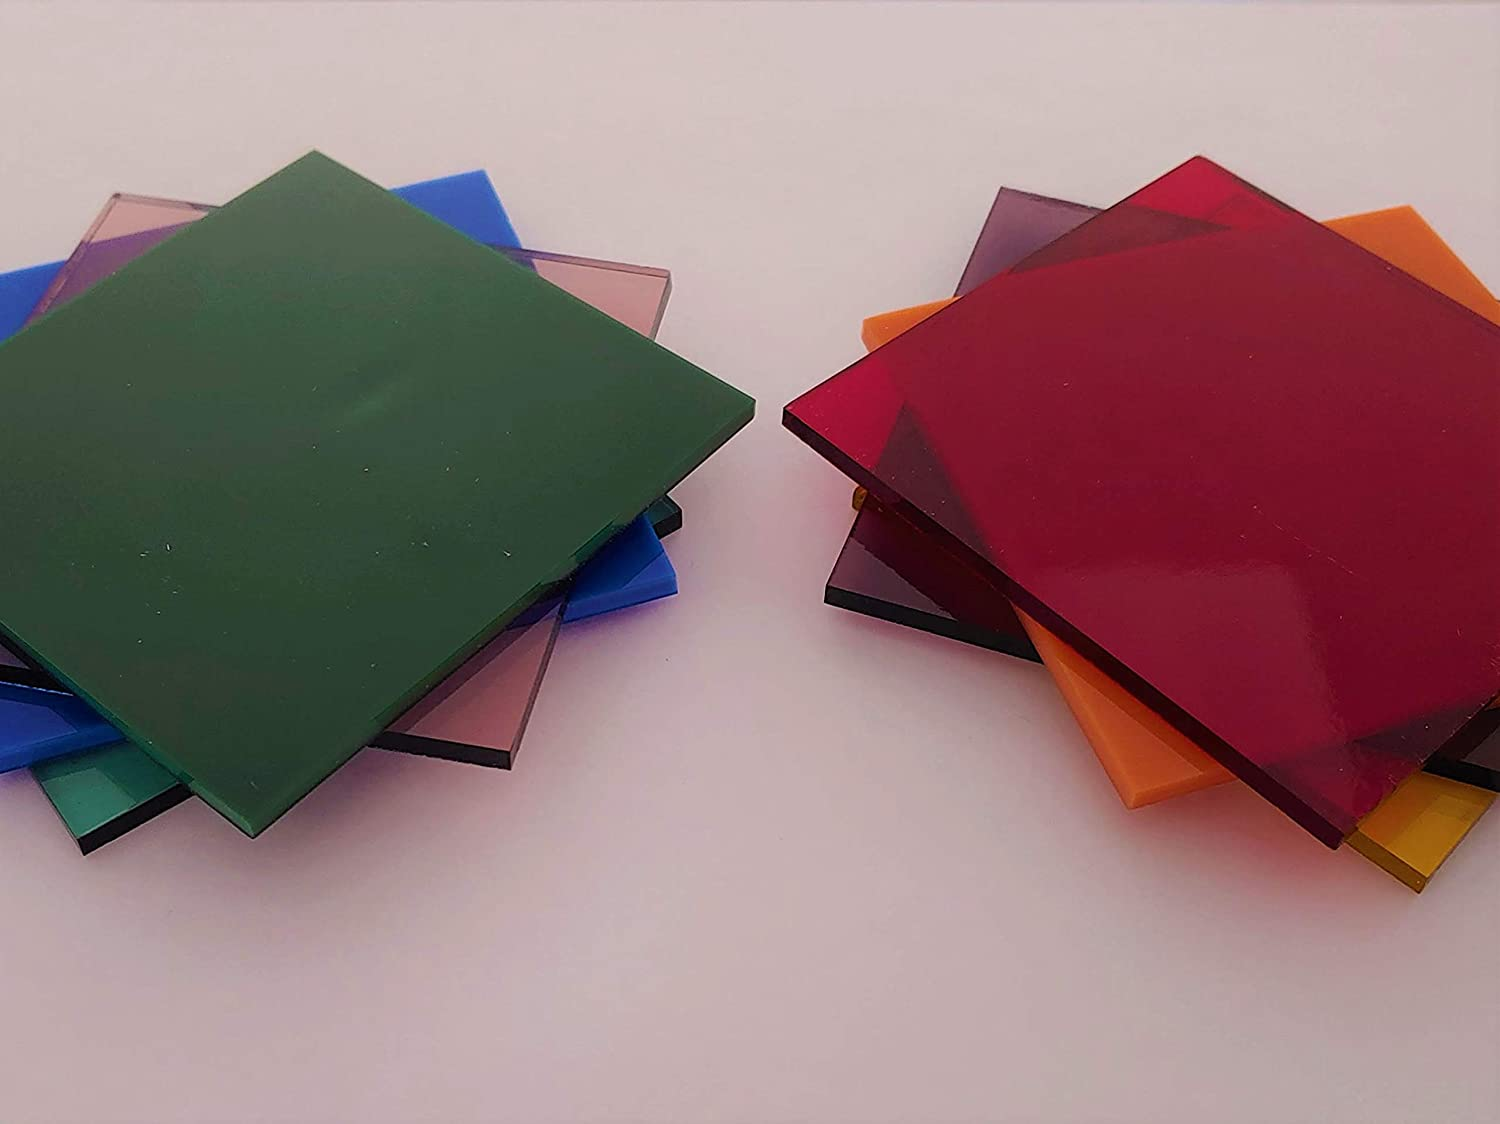 96 COE 3x3 Fusible Mini Variety Stained Glass Pack By Stallings Stained Glass